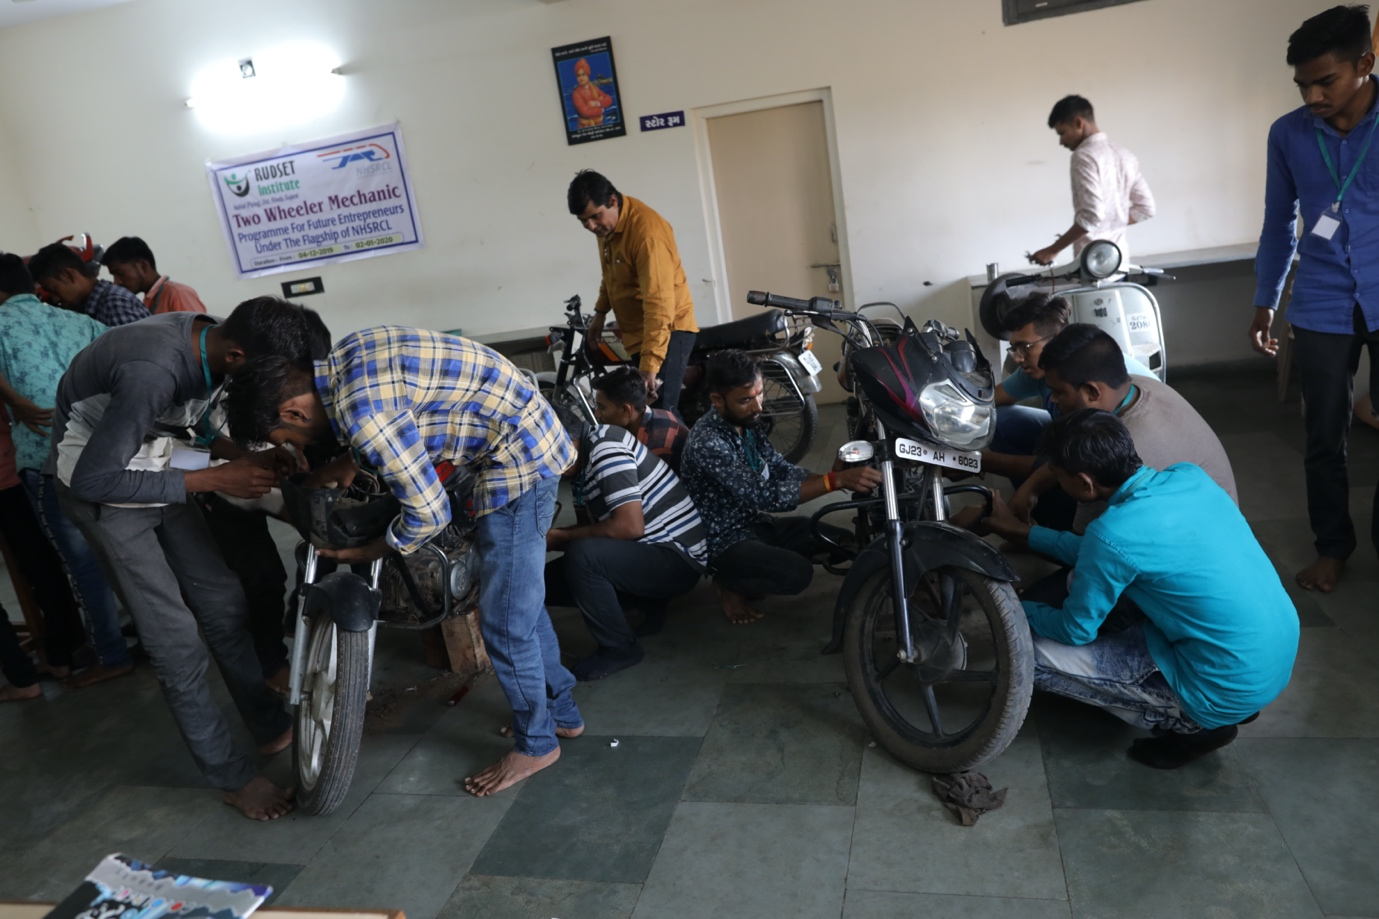 Trainees undergoing two wheeler mechanic training in Kheda (Gujarat)